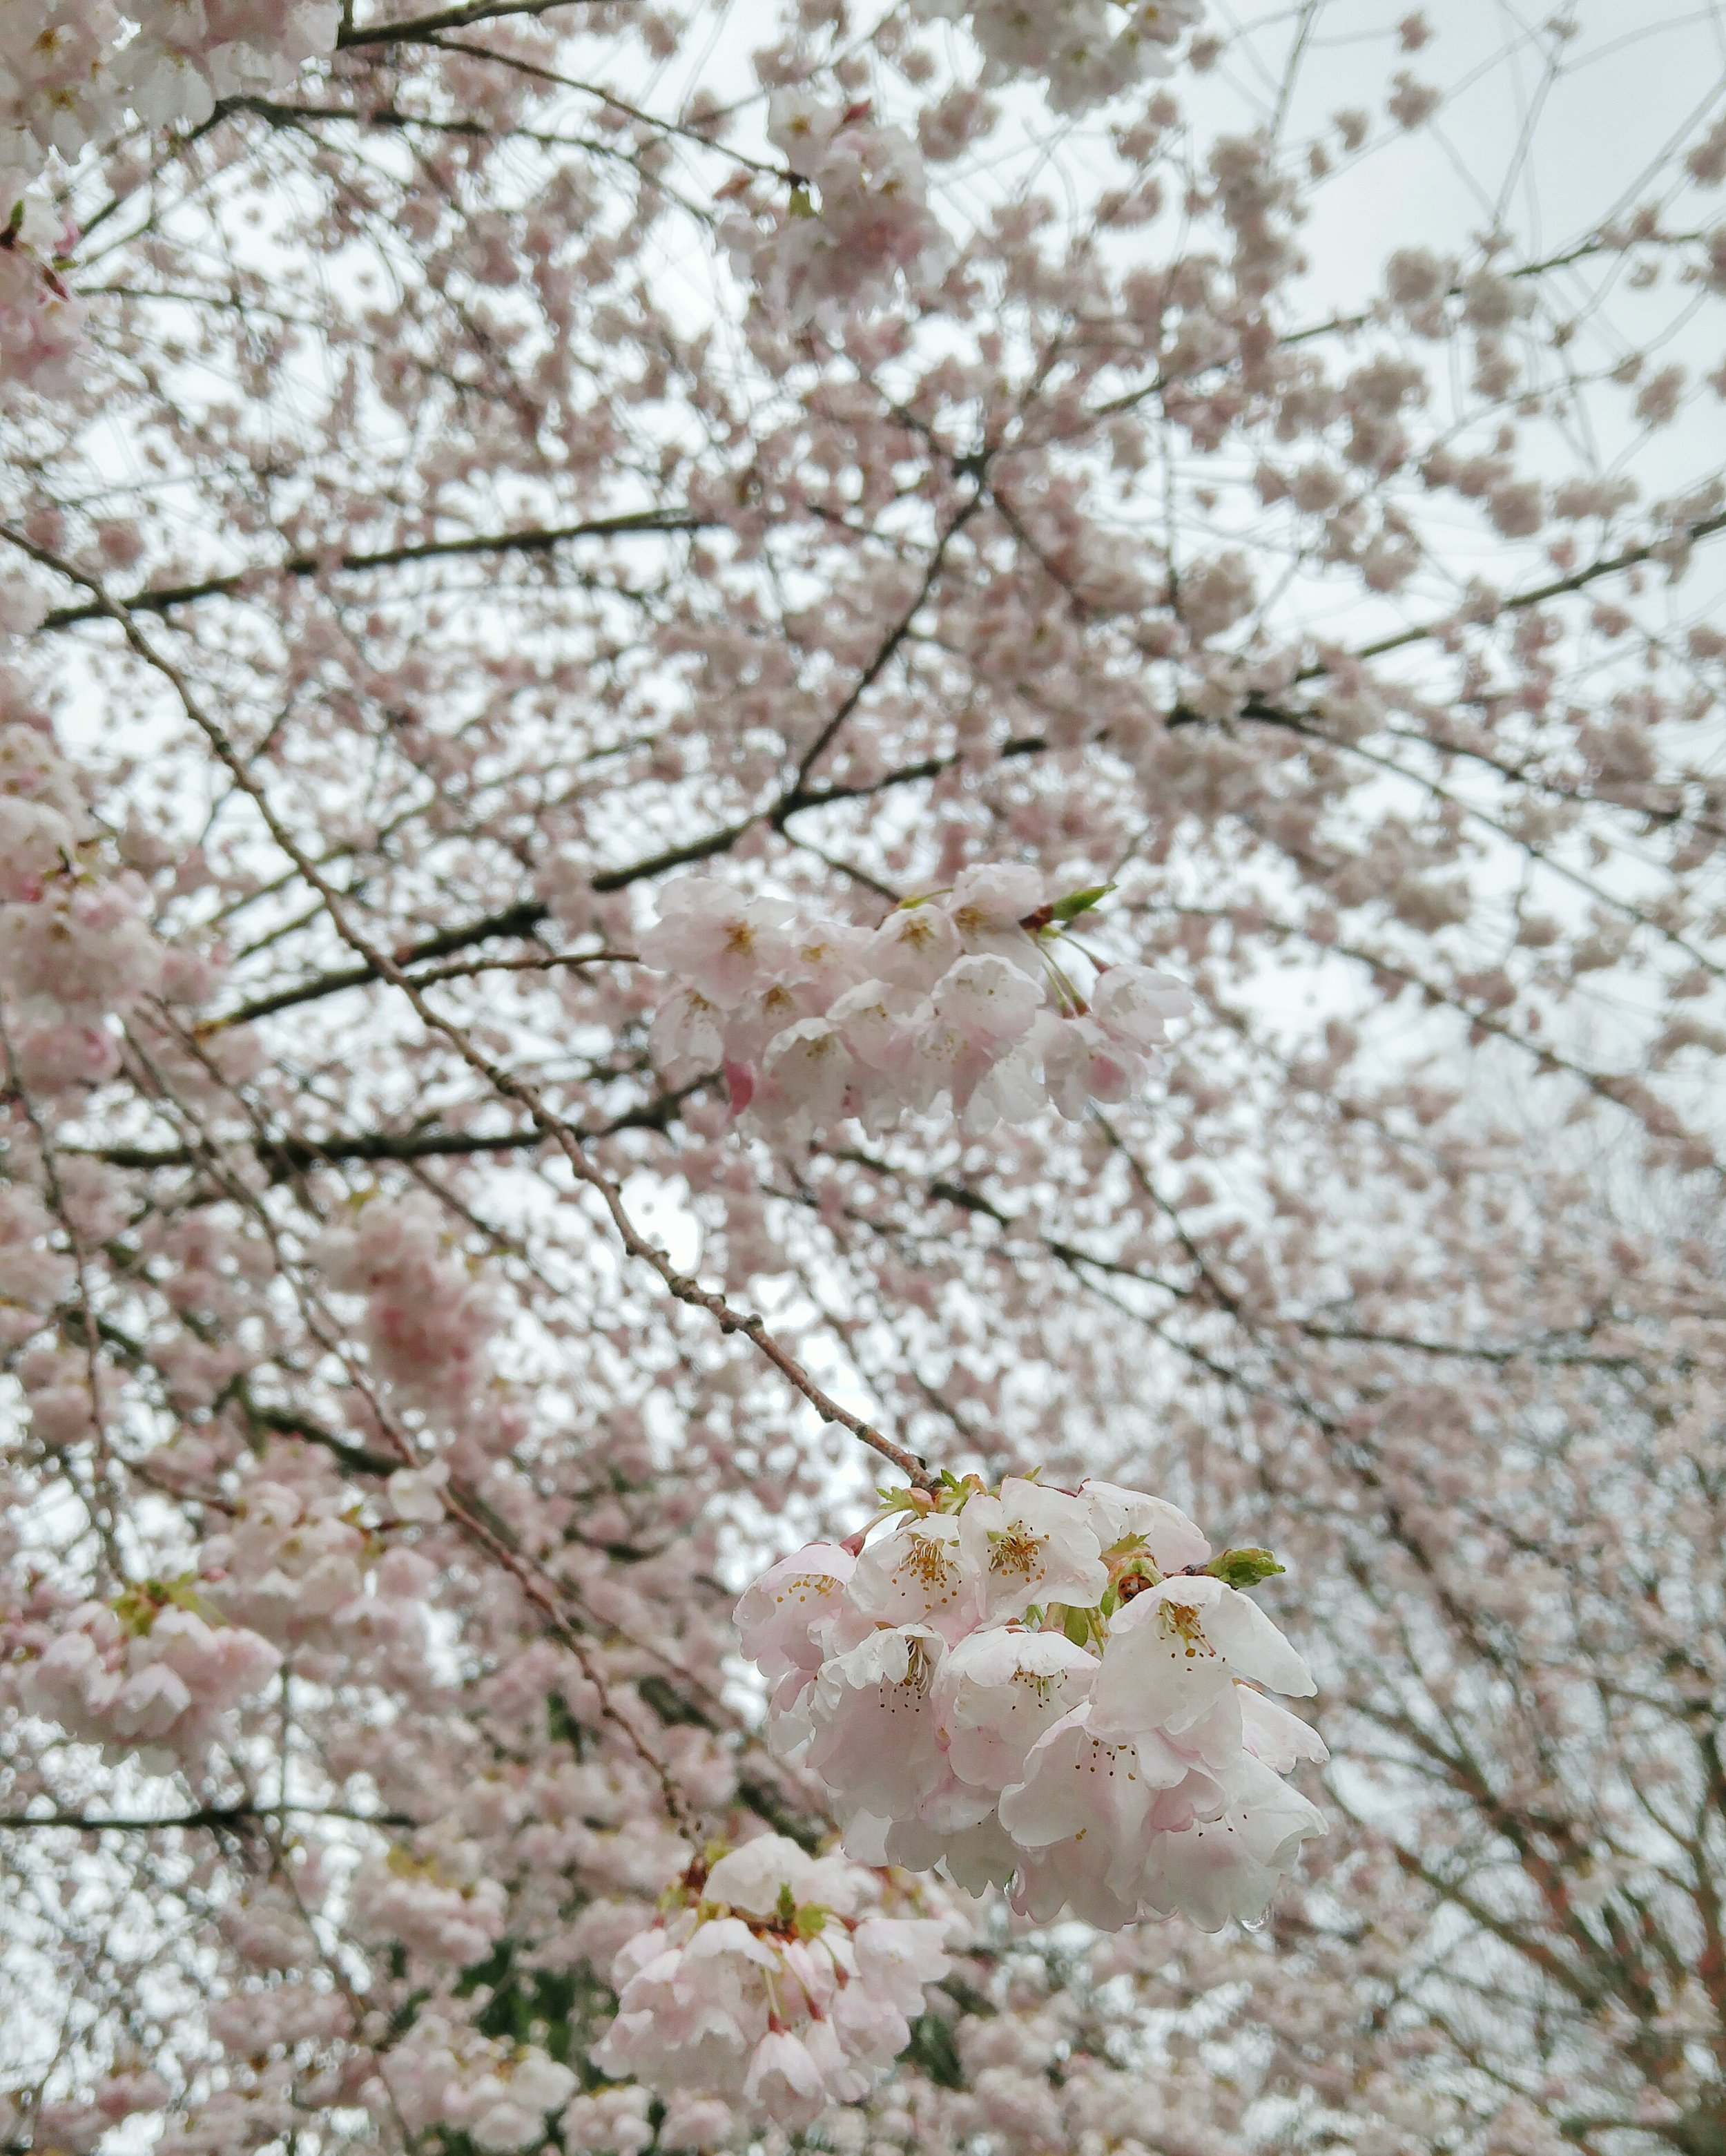 The campus at Trinity Western is COVERED in cherry blossom trees. When they began to bud and bloom in late March, spring could not be contained.